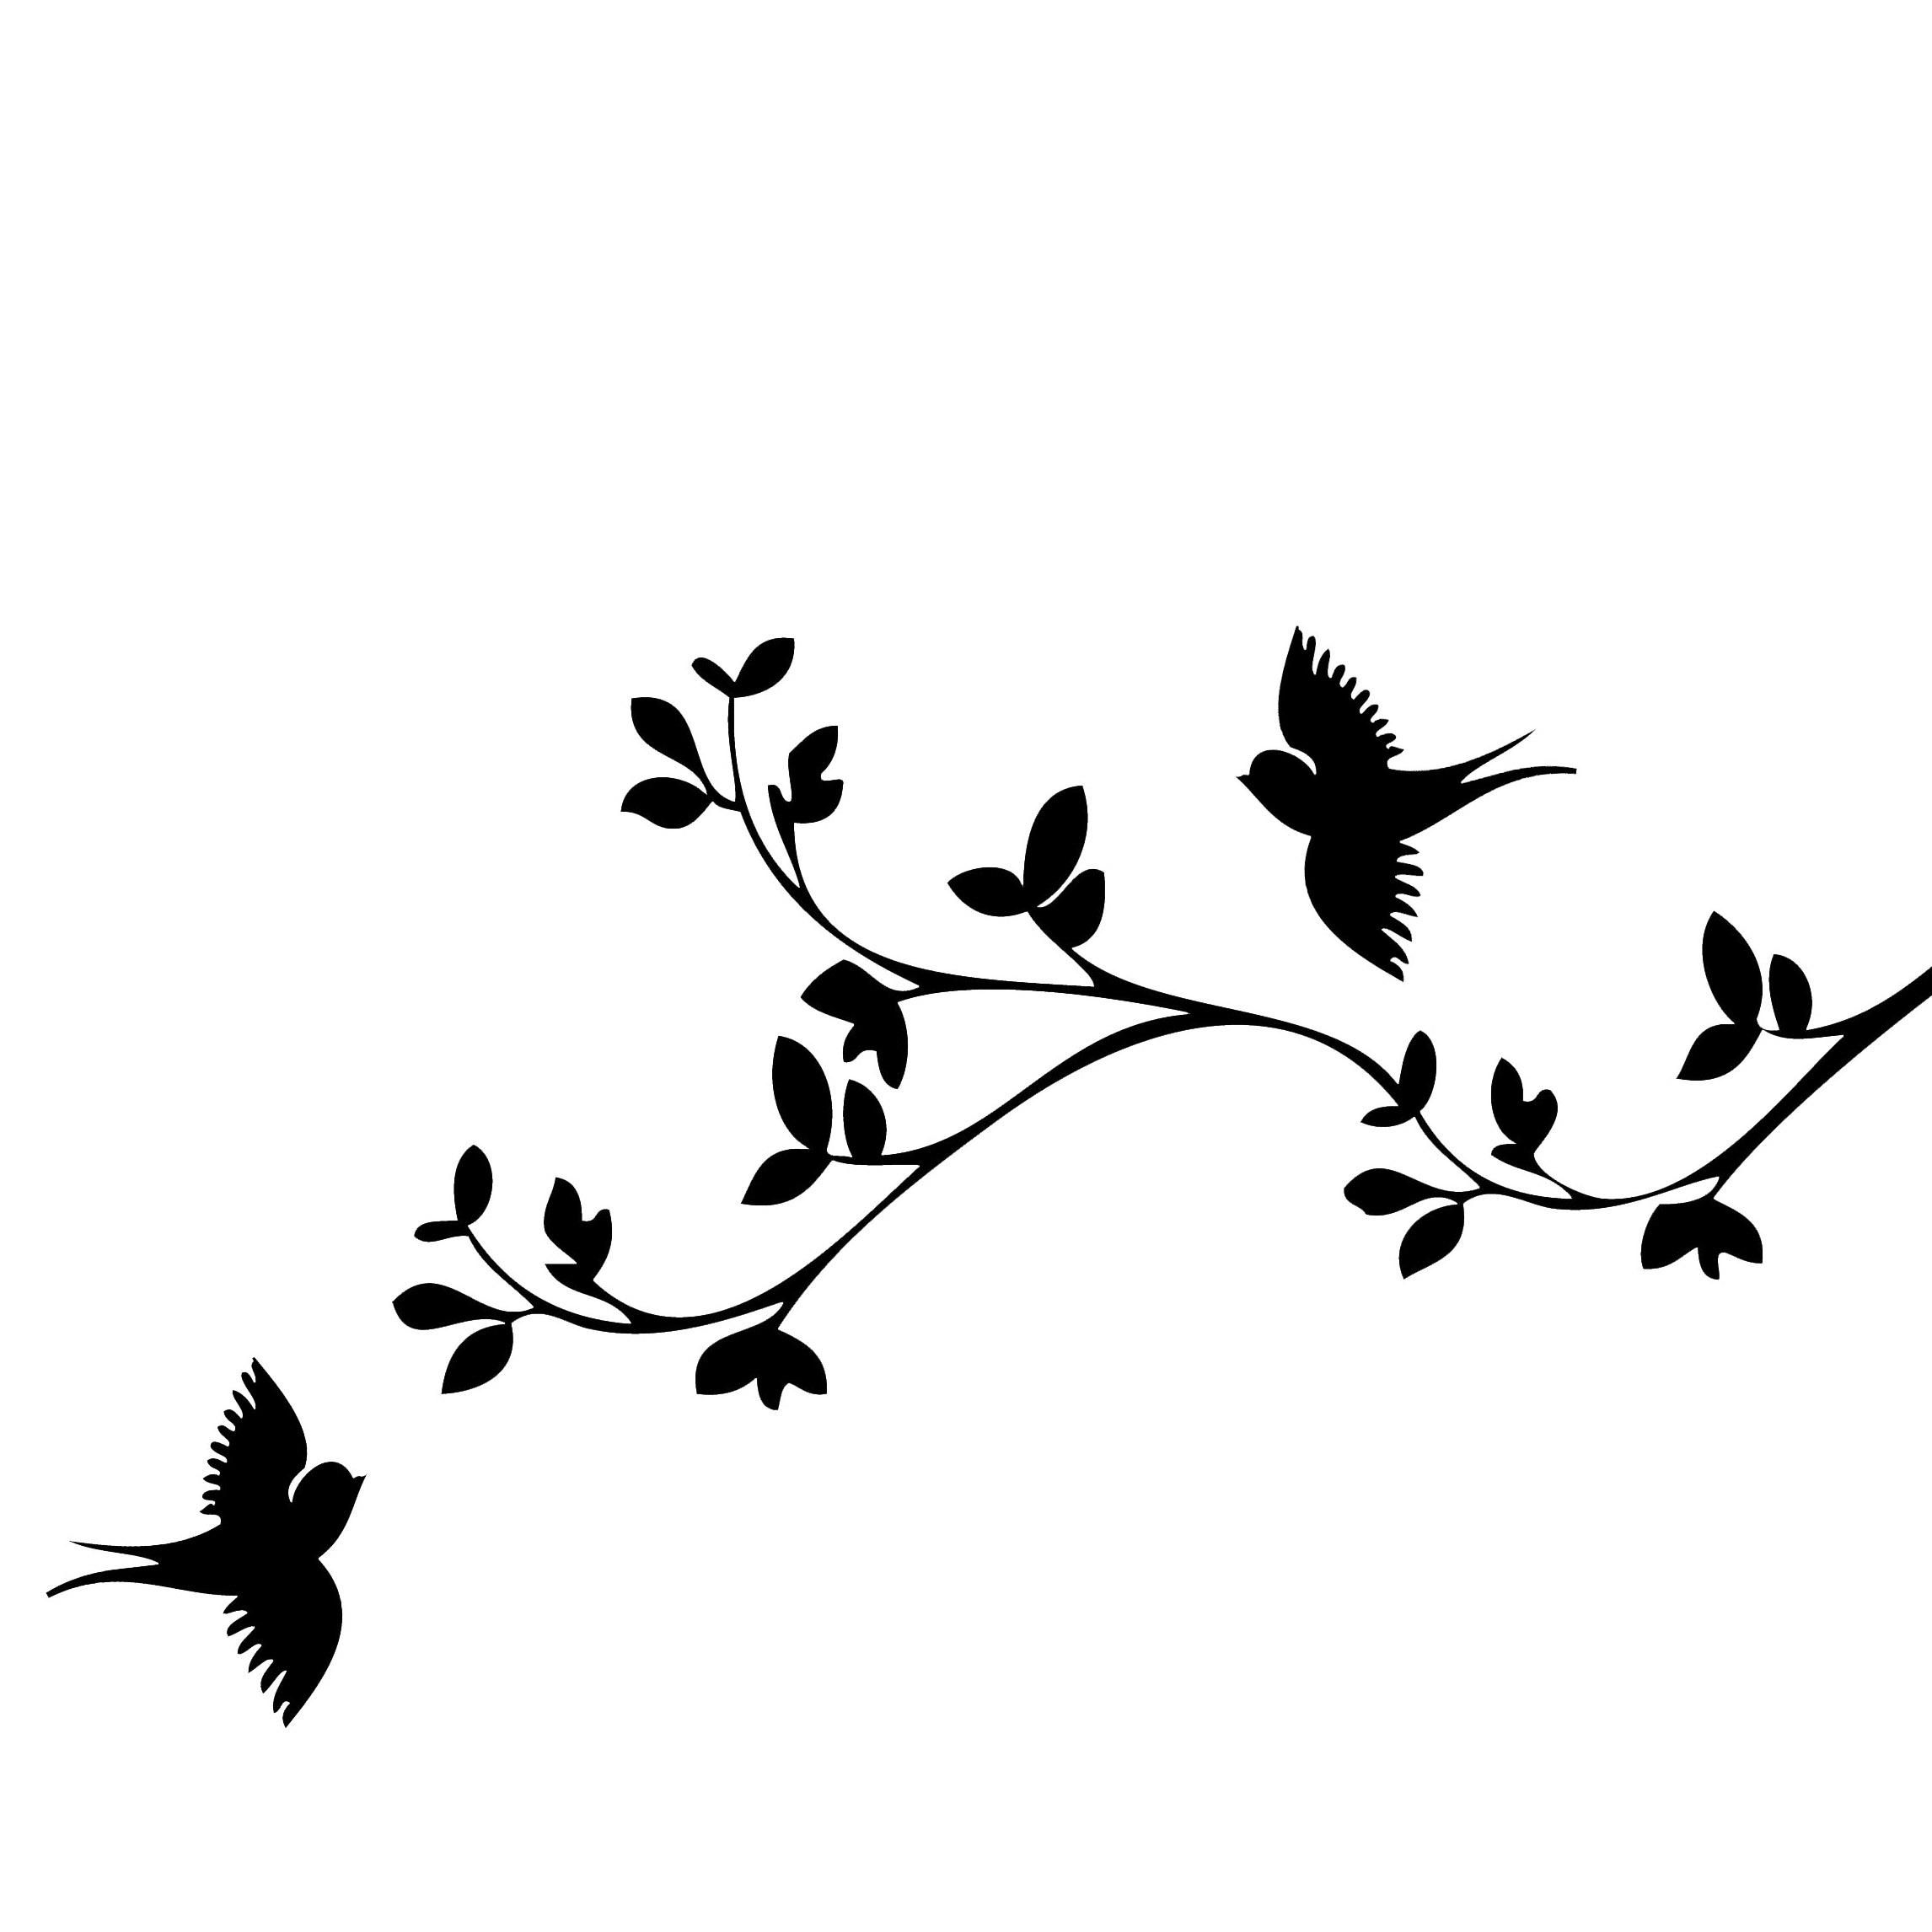 flying birds bird collected from other silhouettes jobspapa rh pinterest com bird flying clipart birds flying clipart